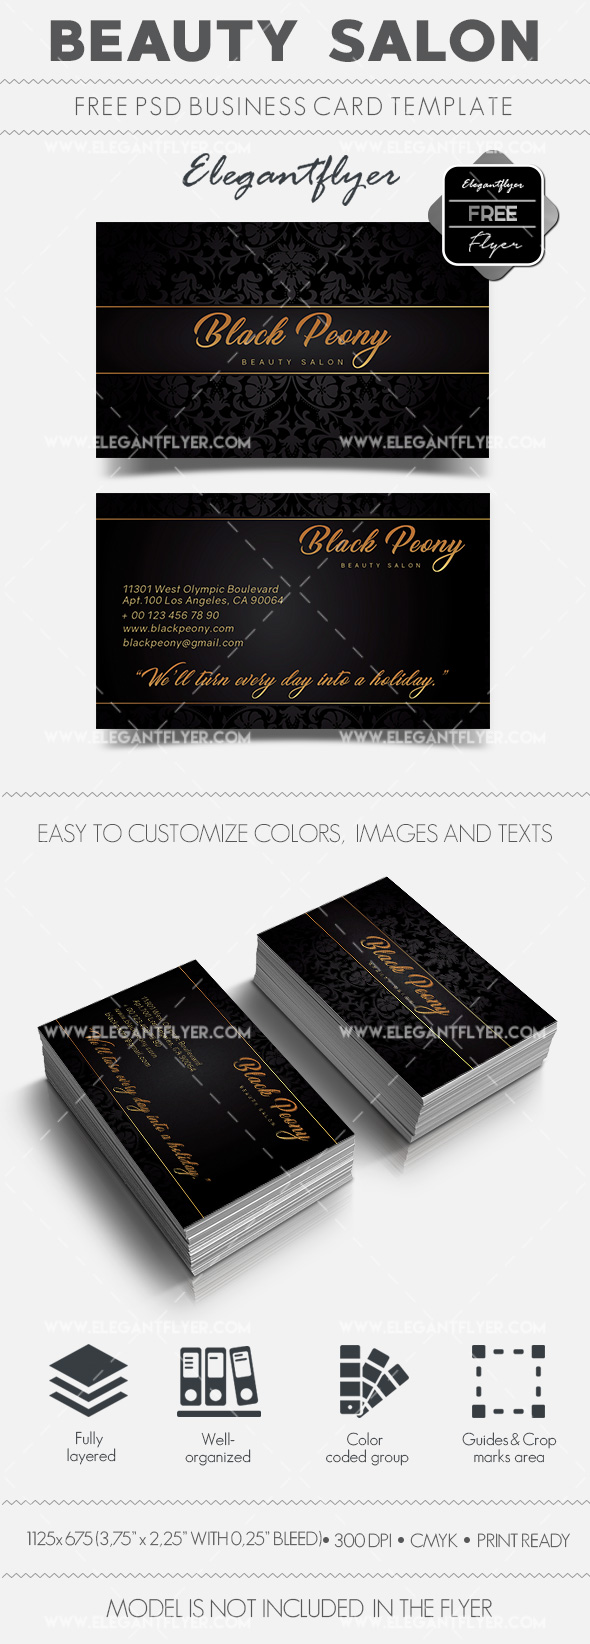 Beauty salon free business card design by elegantflyer beauty salon free business card design reheart Gallery